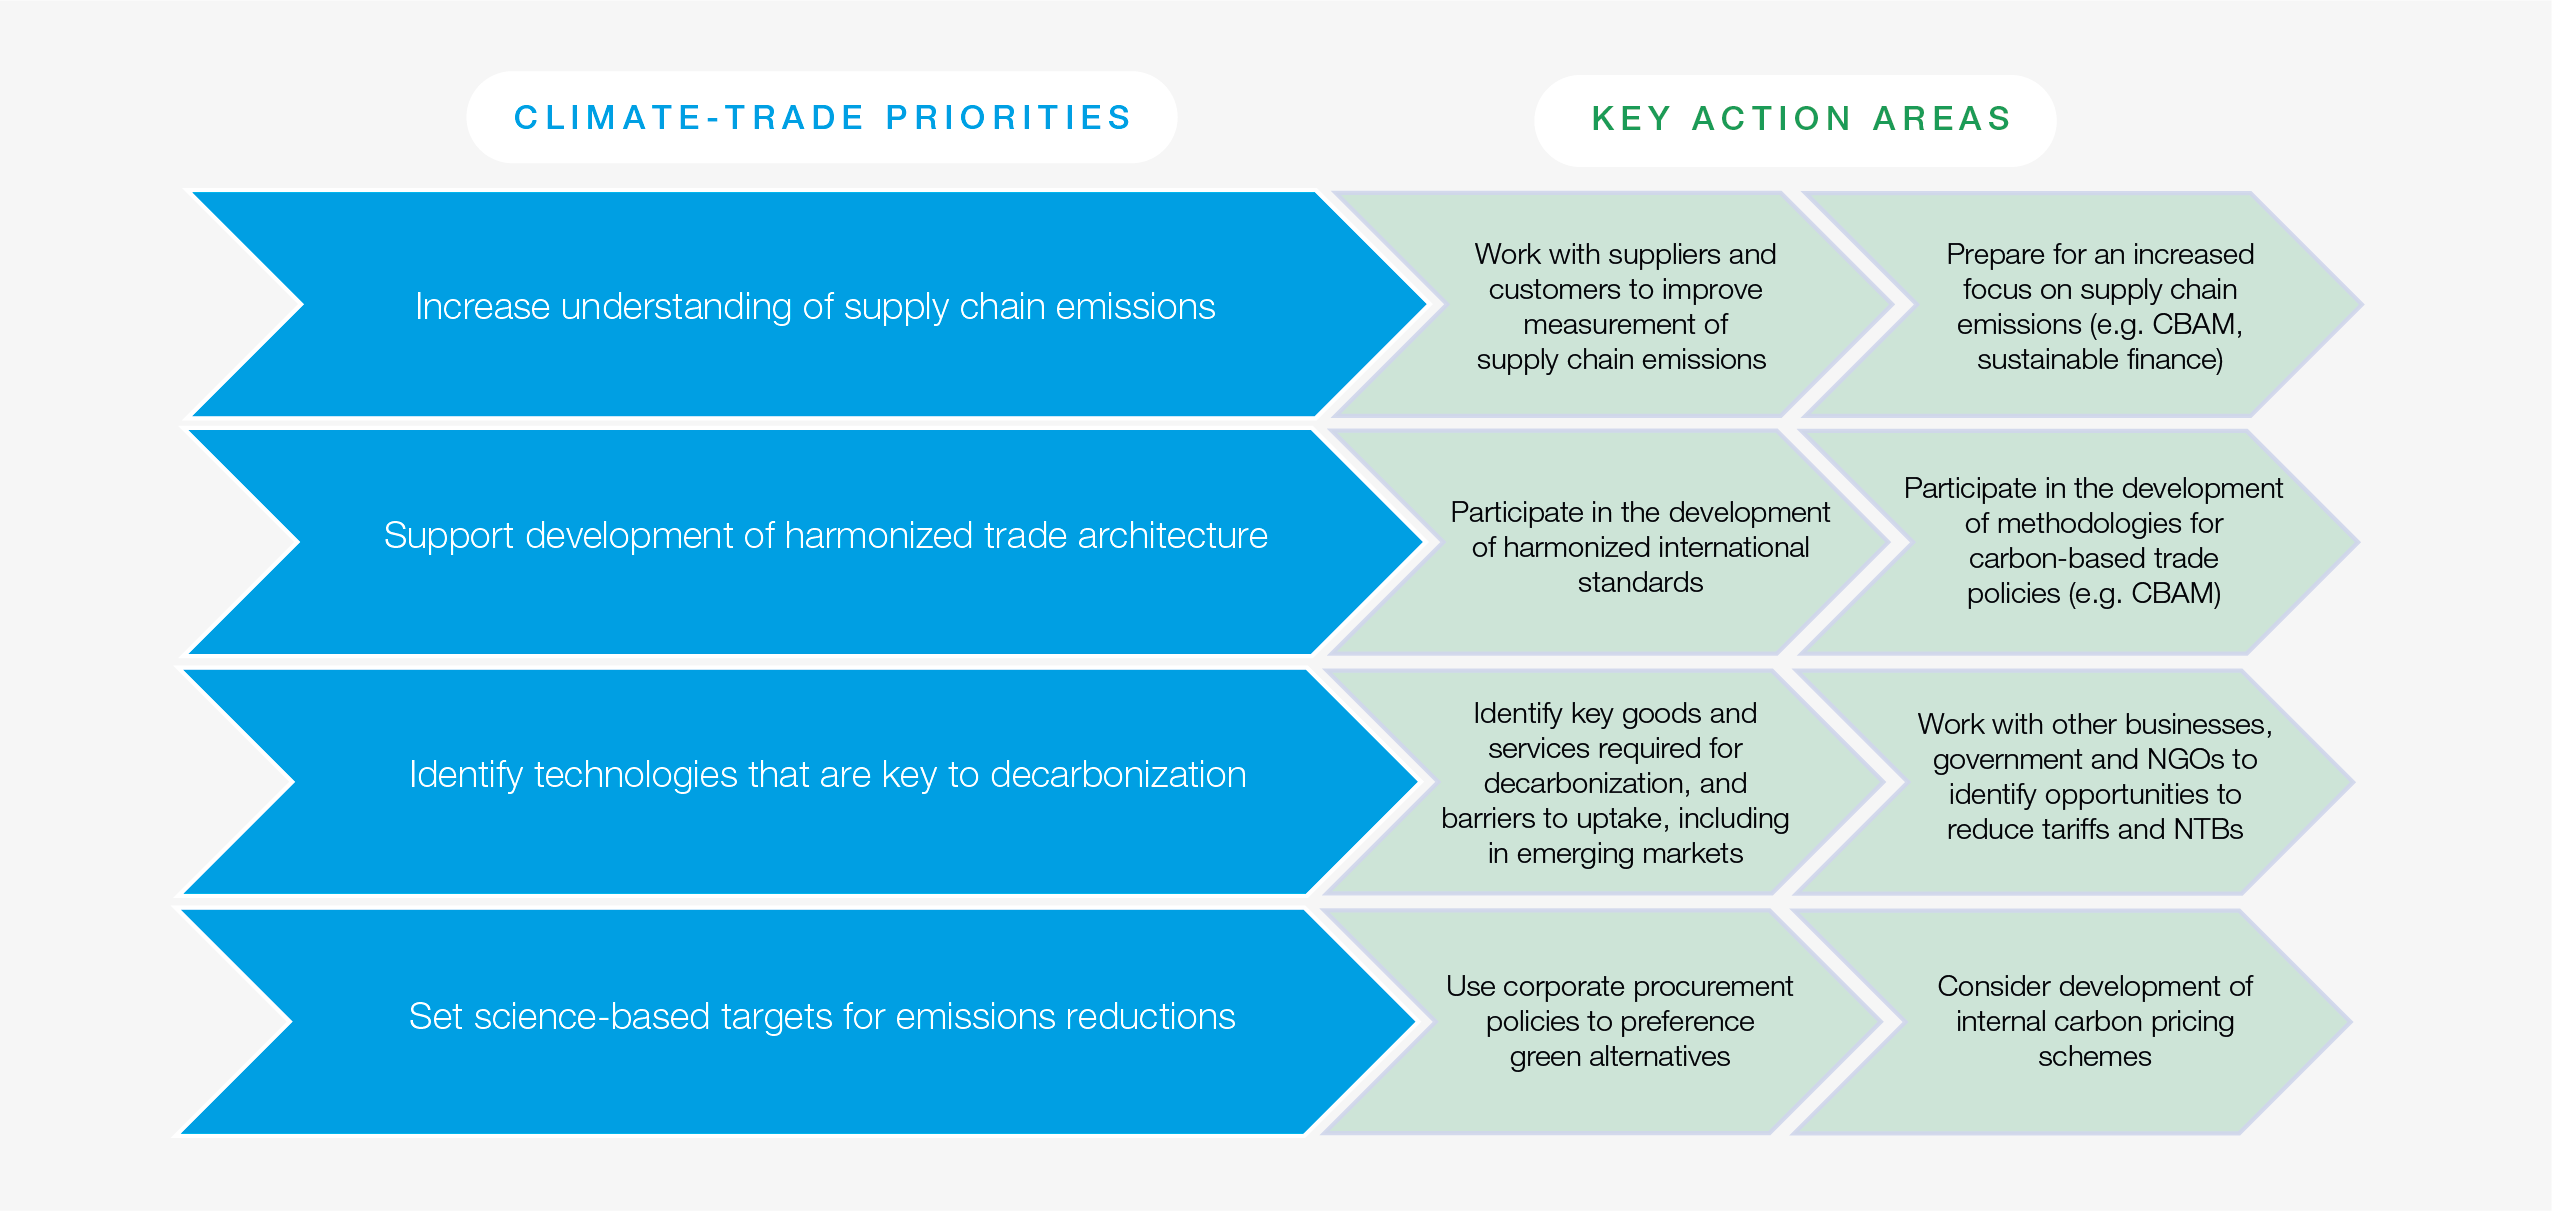 Opportunities for business to prepare for, and support, climate-trade initiatives